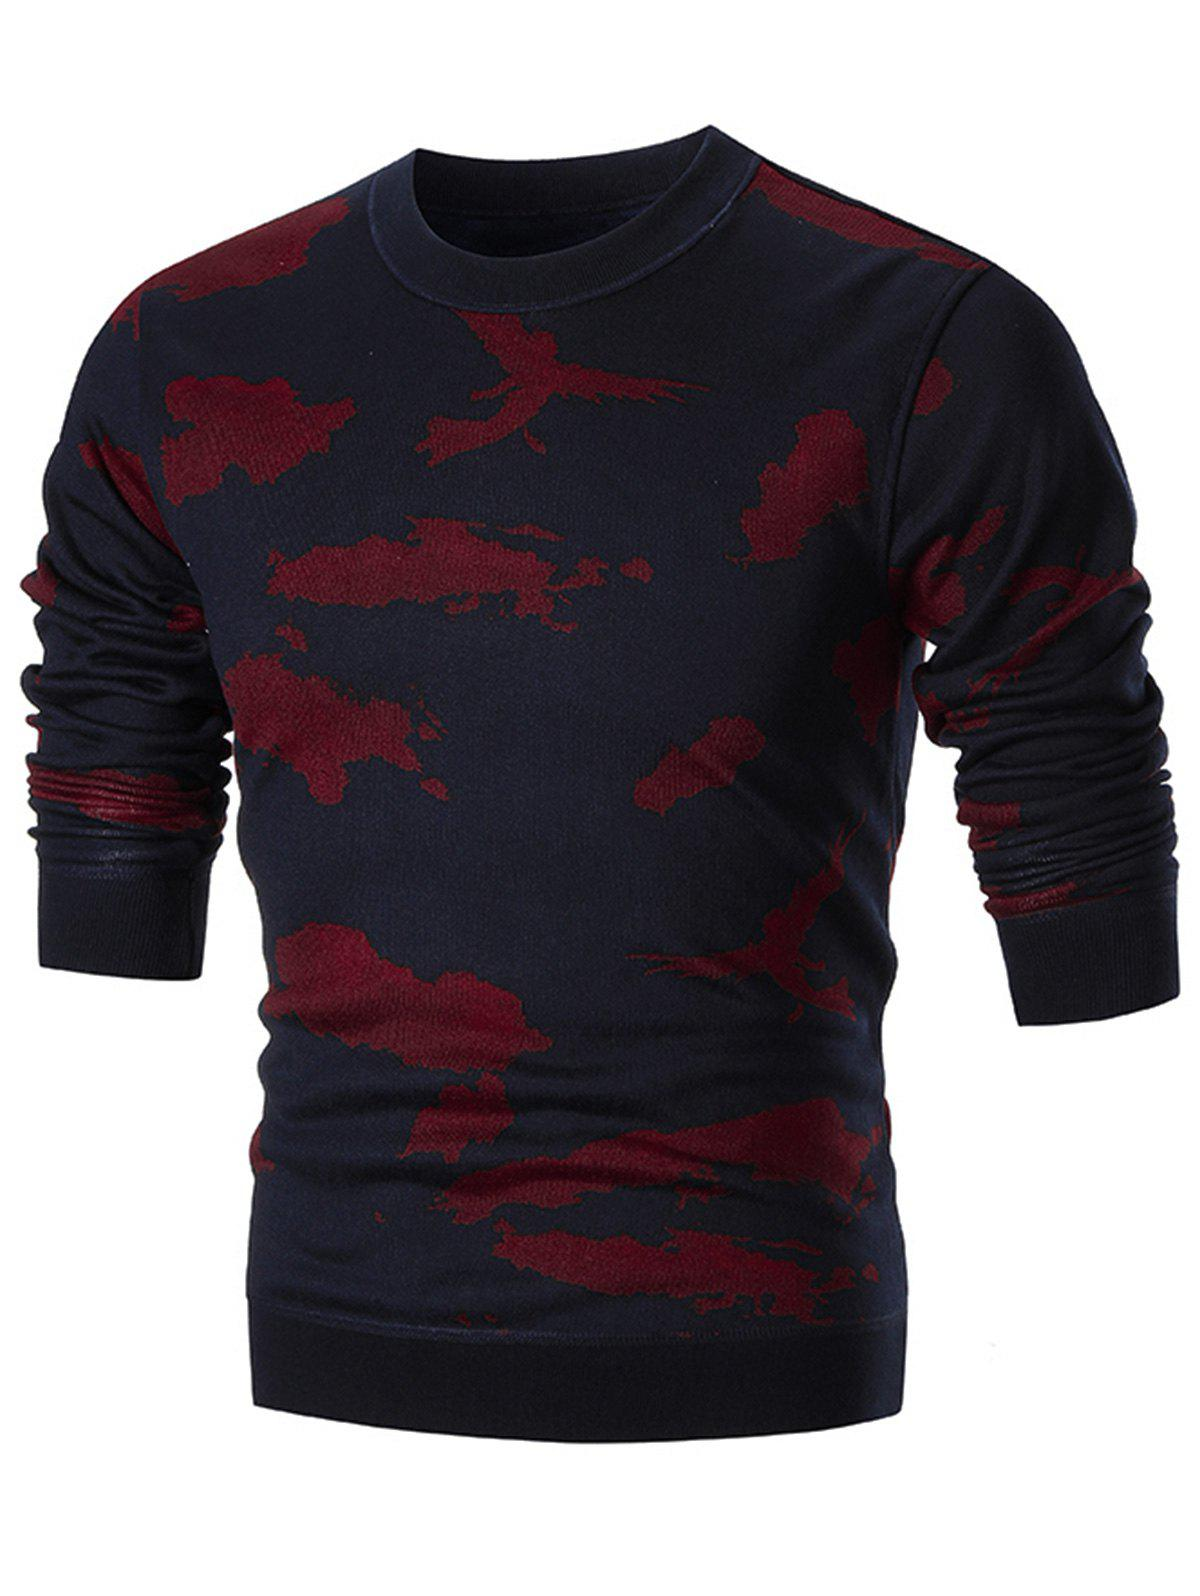 Camo Print Crew Neck Knit Sweater - RED 3XL